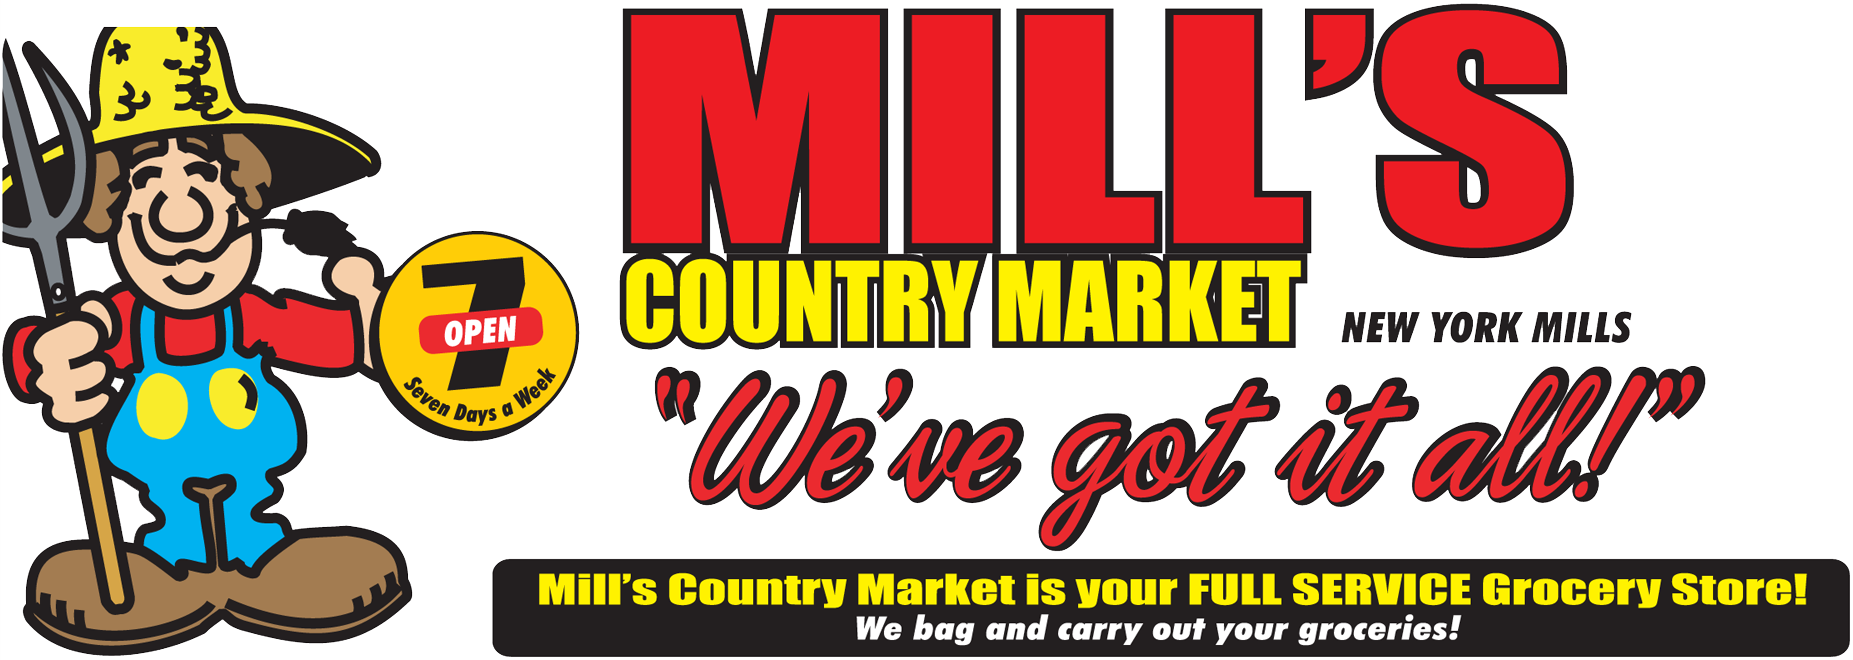 Mills Country Market